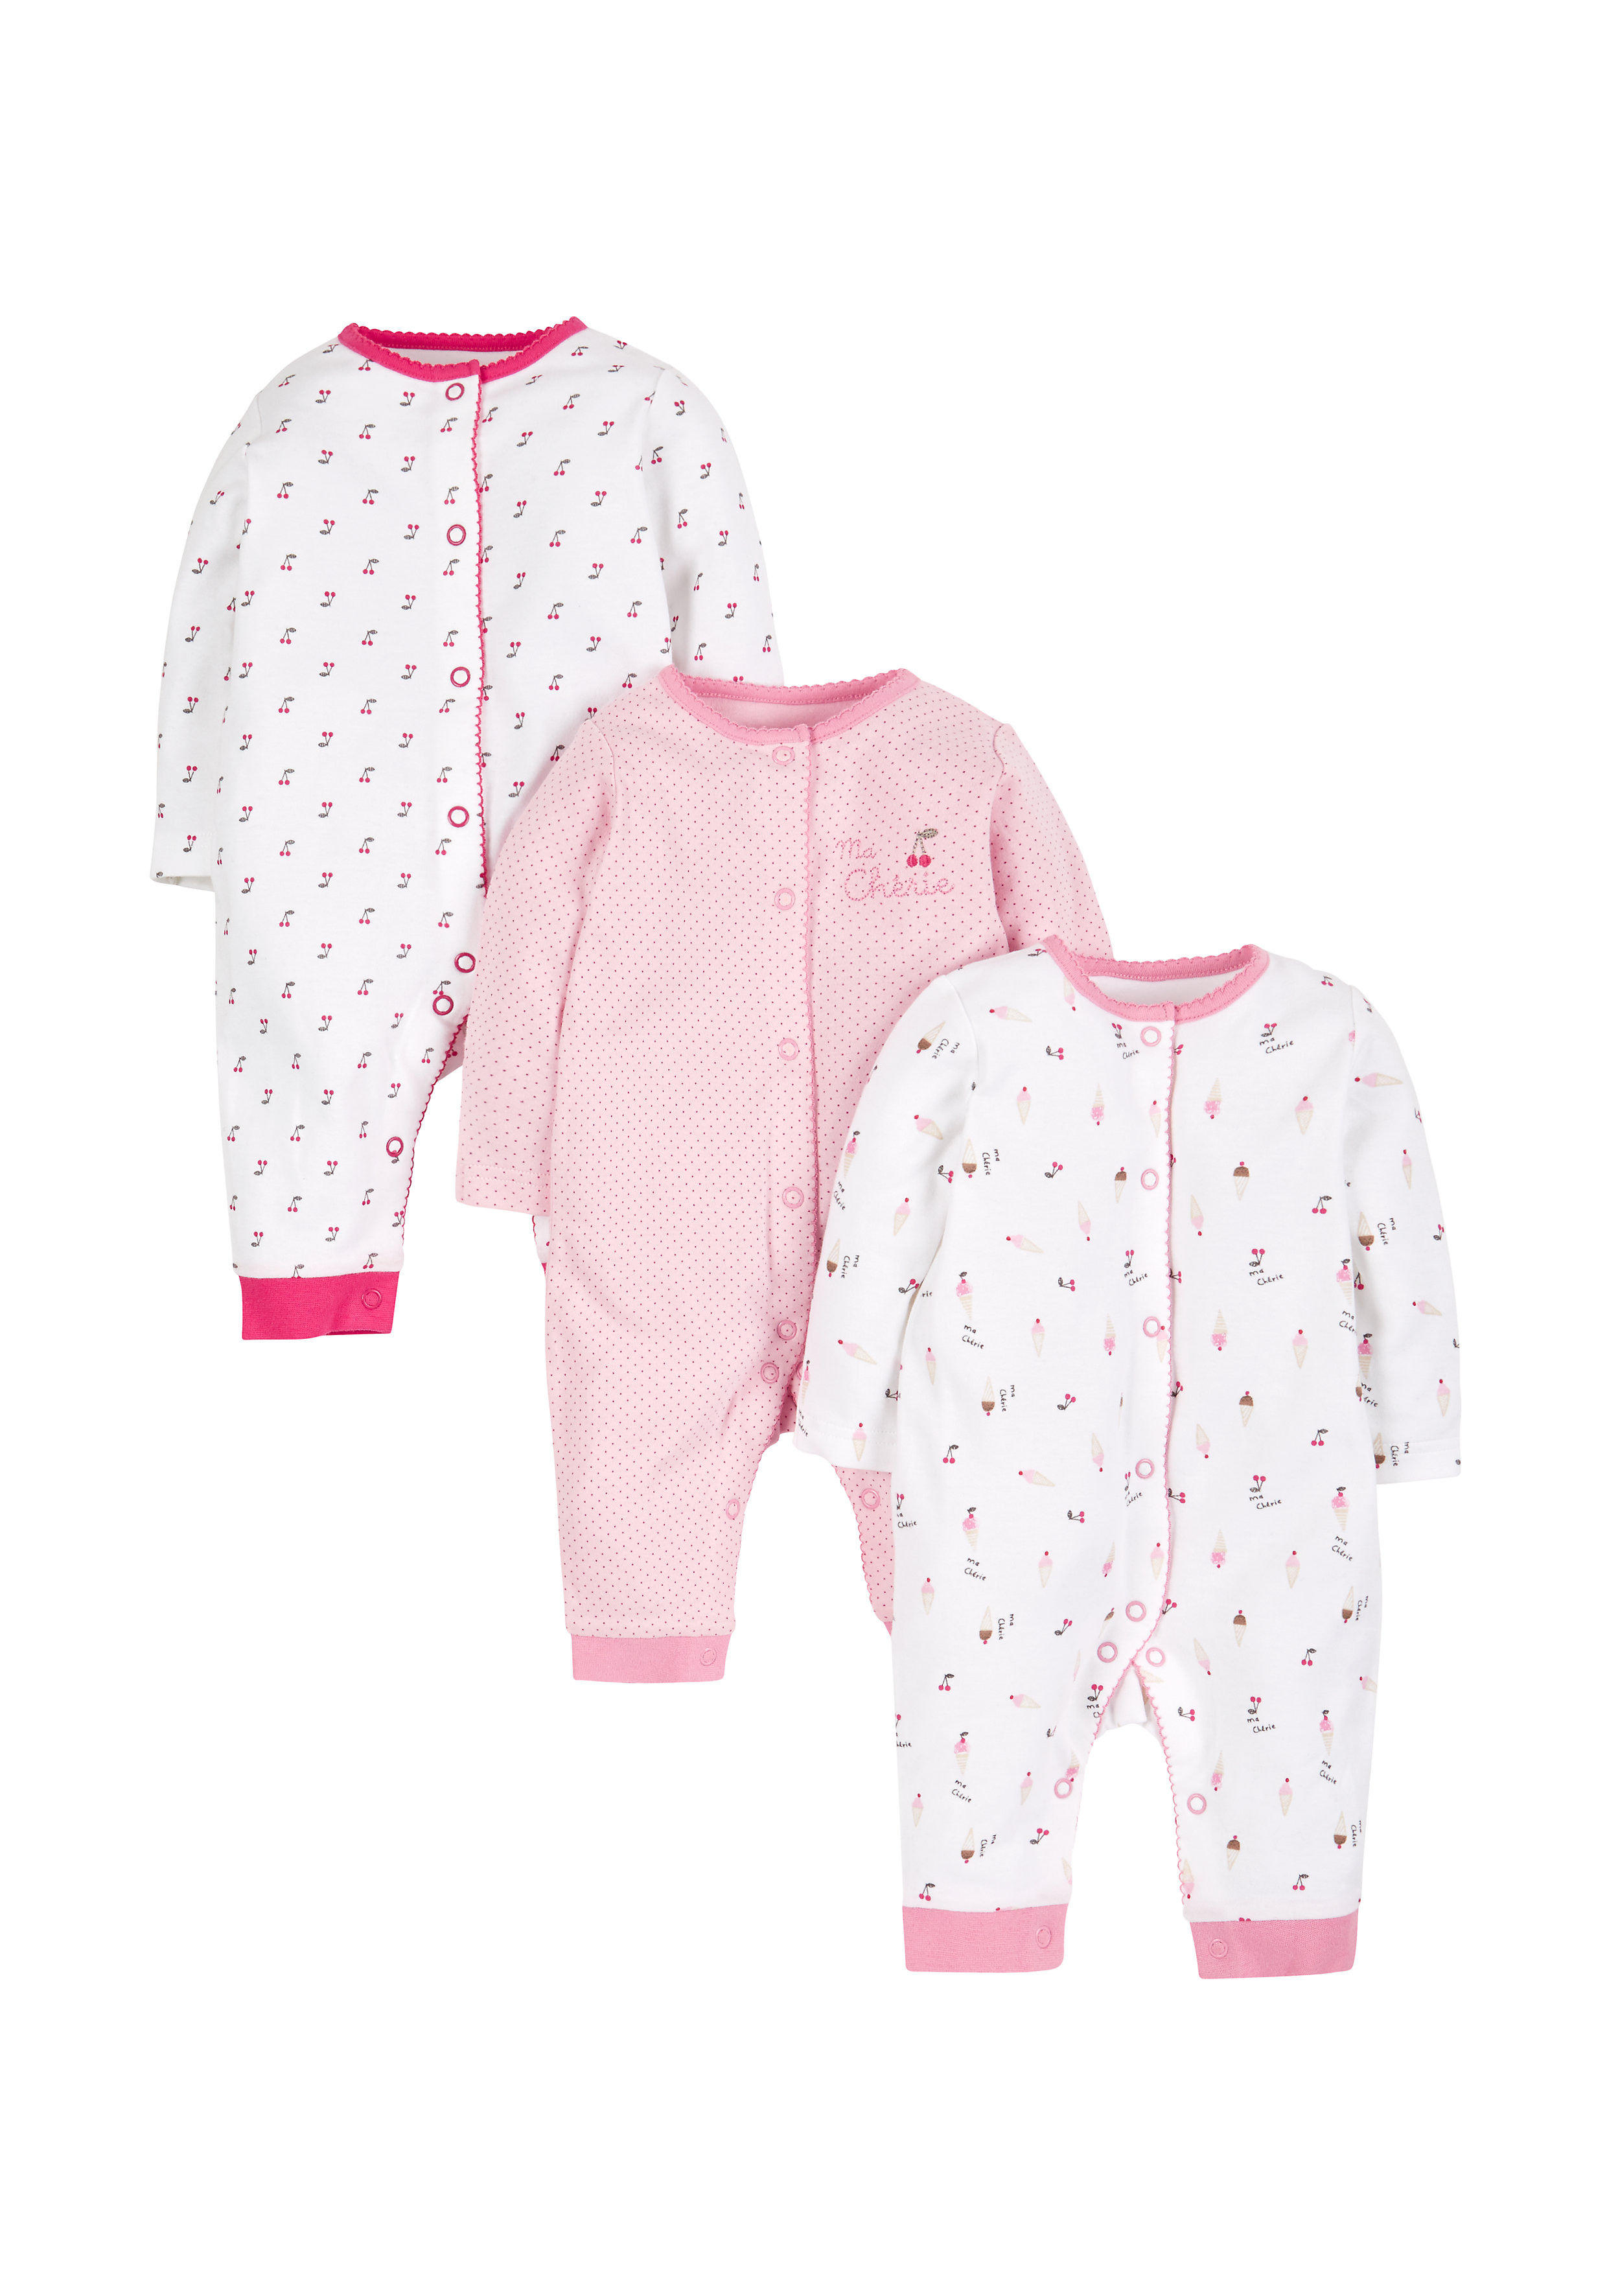 Mothercare   Girls Footless Sleepsuits - Pack Of 3 - Pink